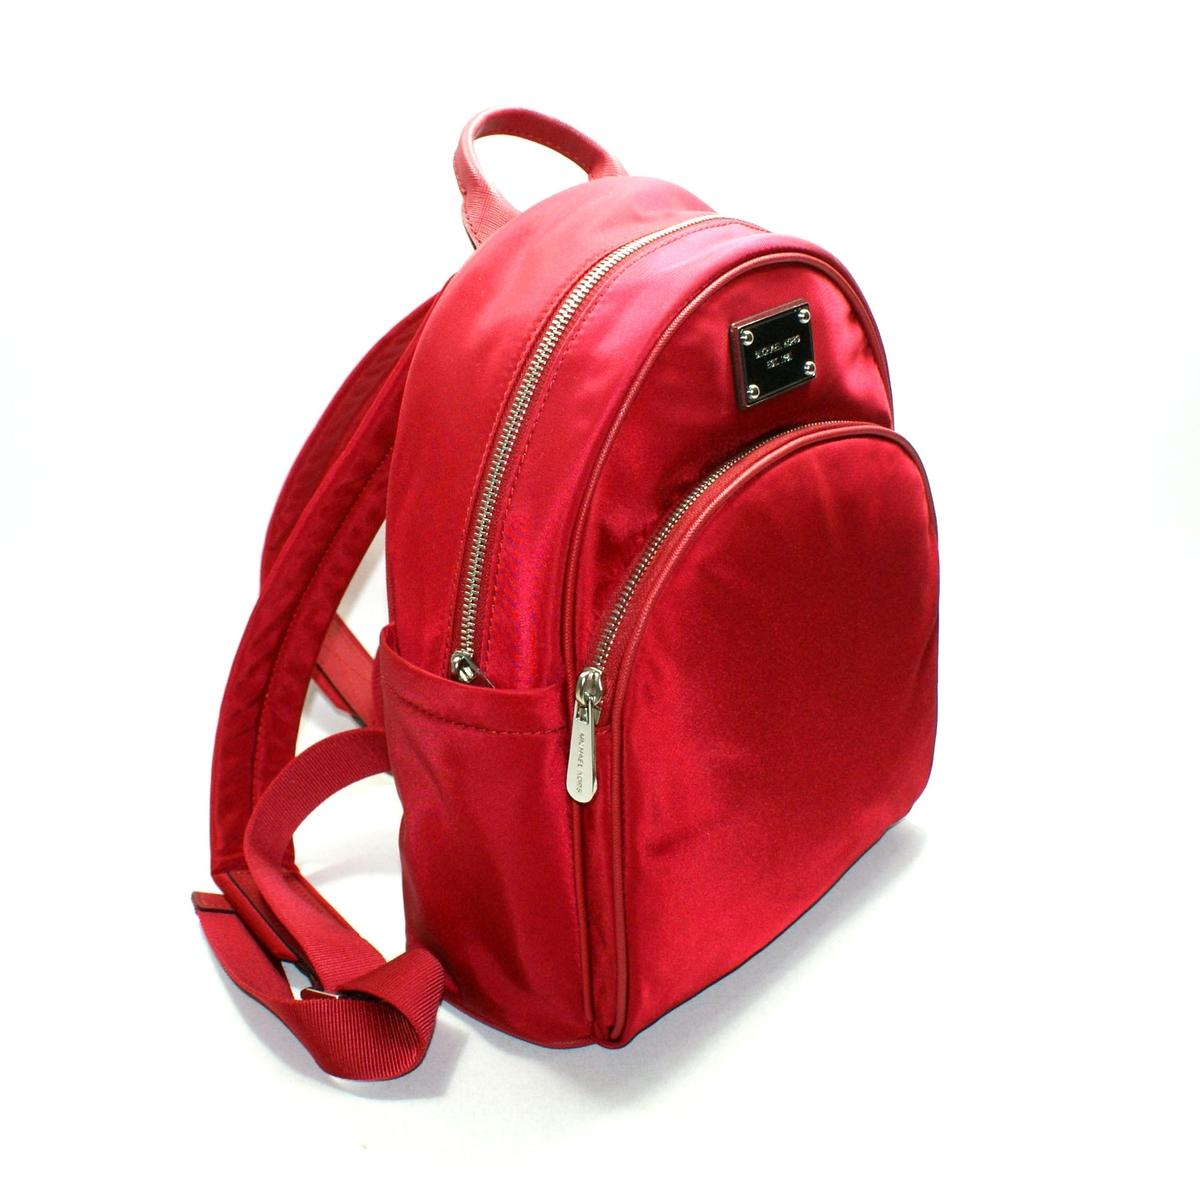 Michael Kors Jet Set Small Backpack Scarlet Red #30F4STTB5C : Michael ...